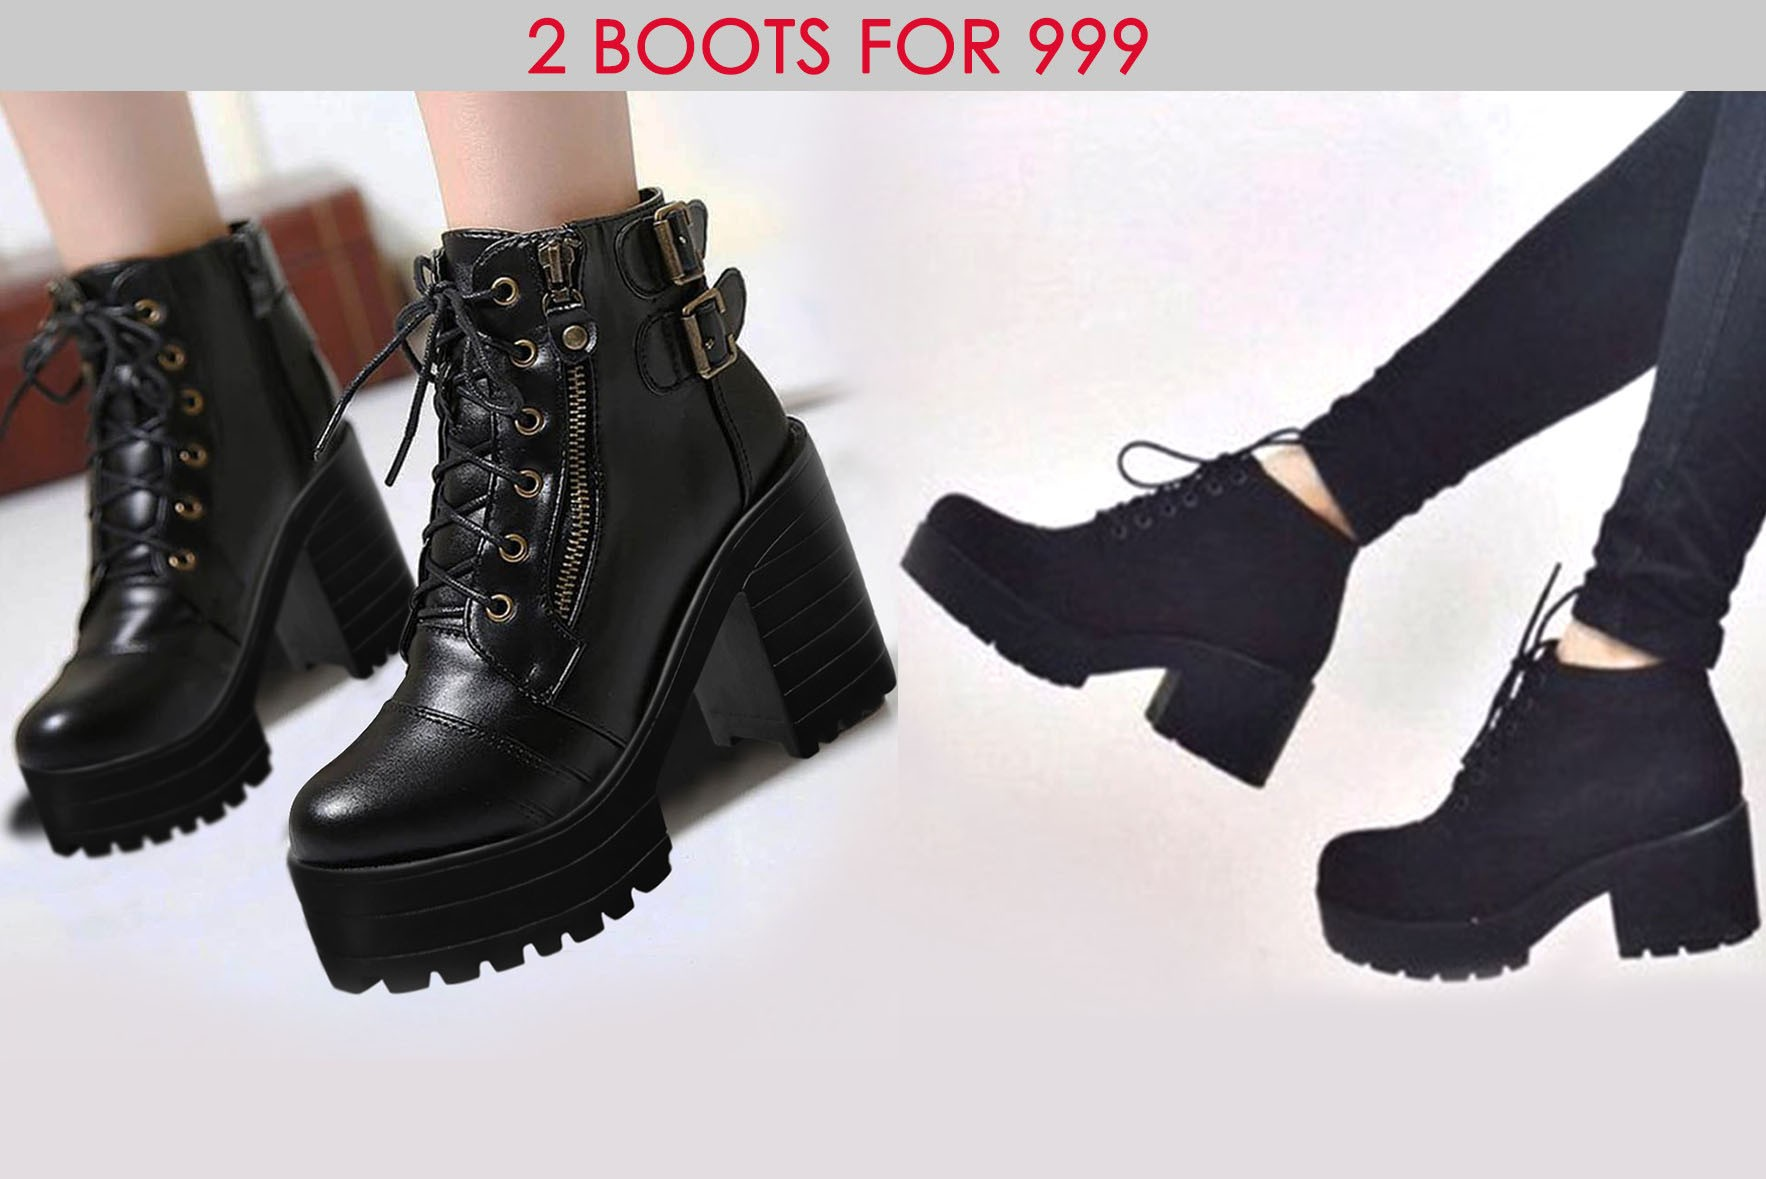 Combo- Twist of Gait Boots & Women Zipper High Heels Lace Up Boots